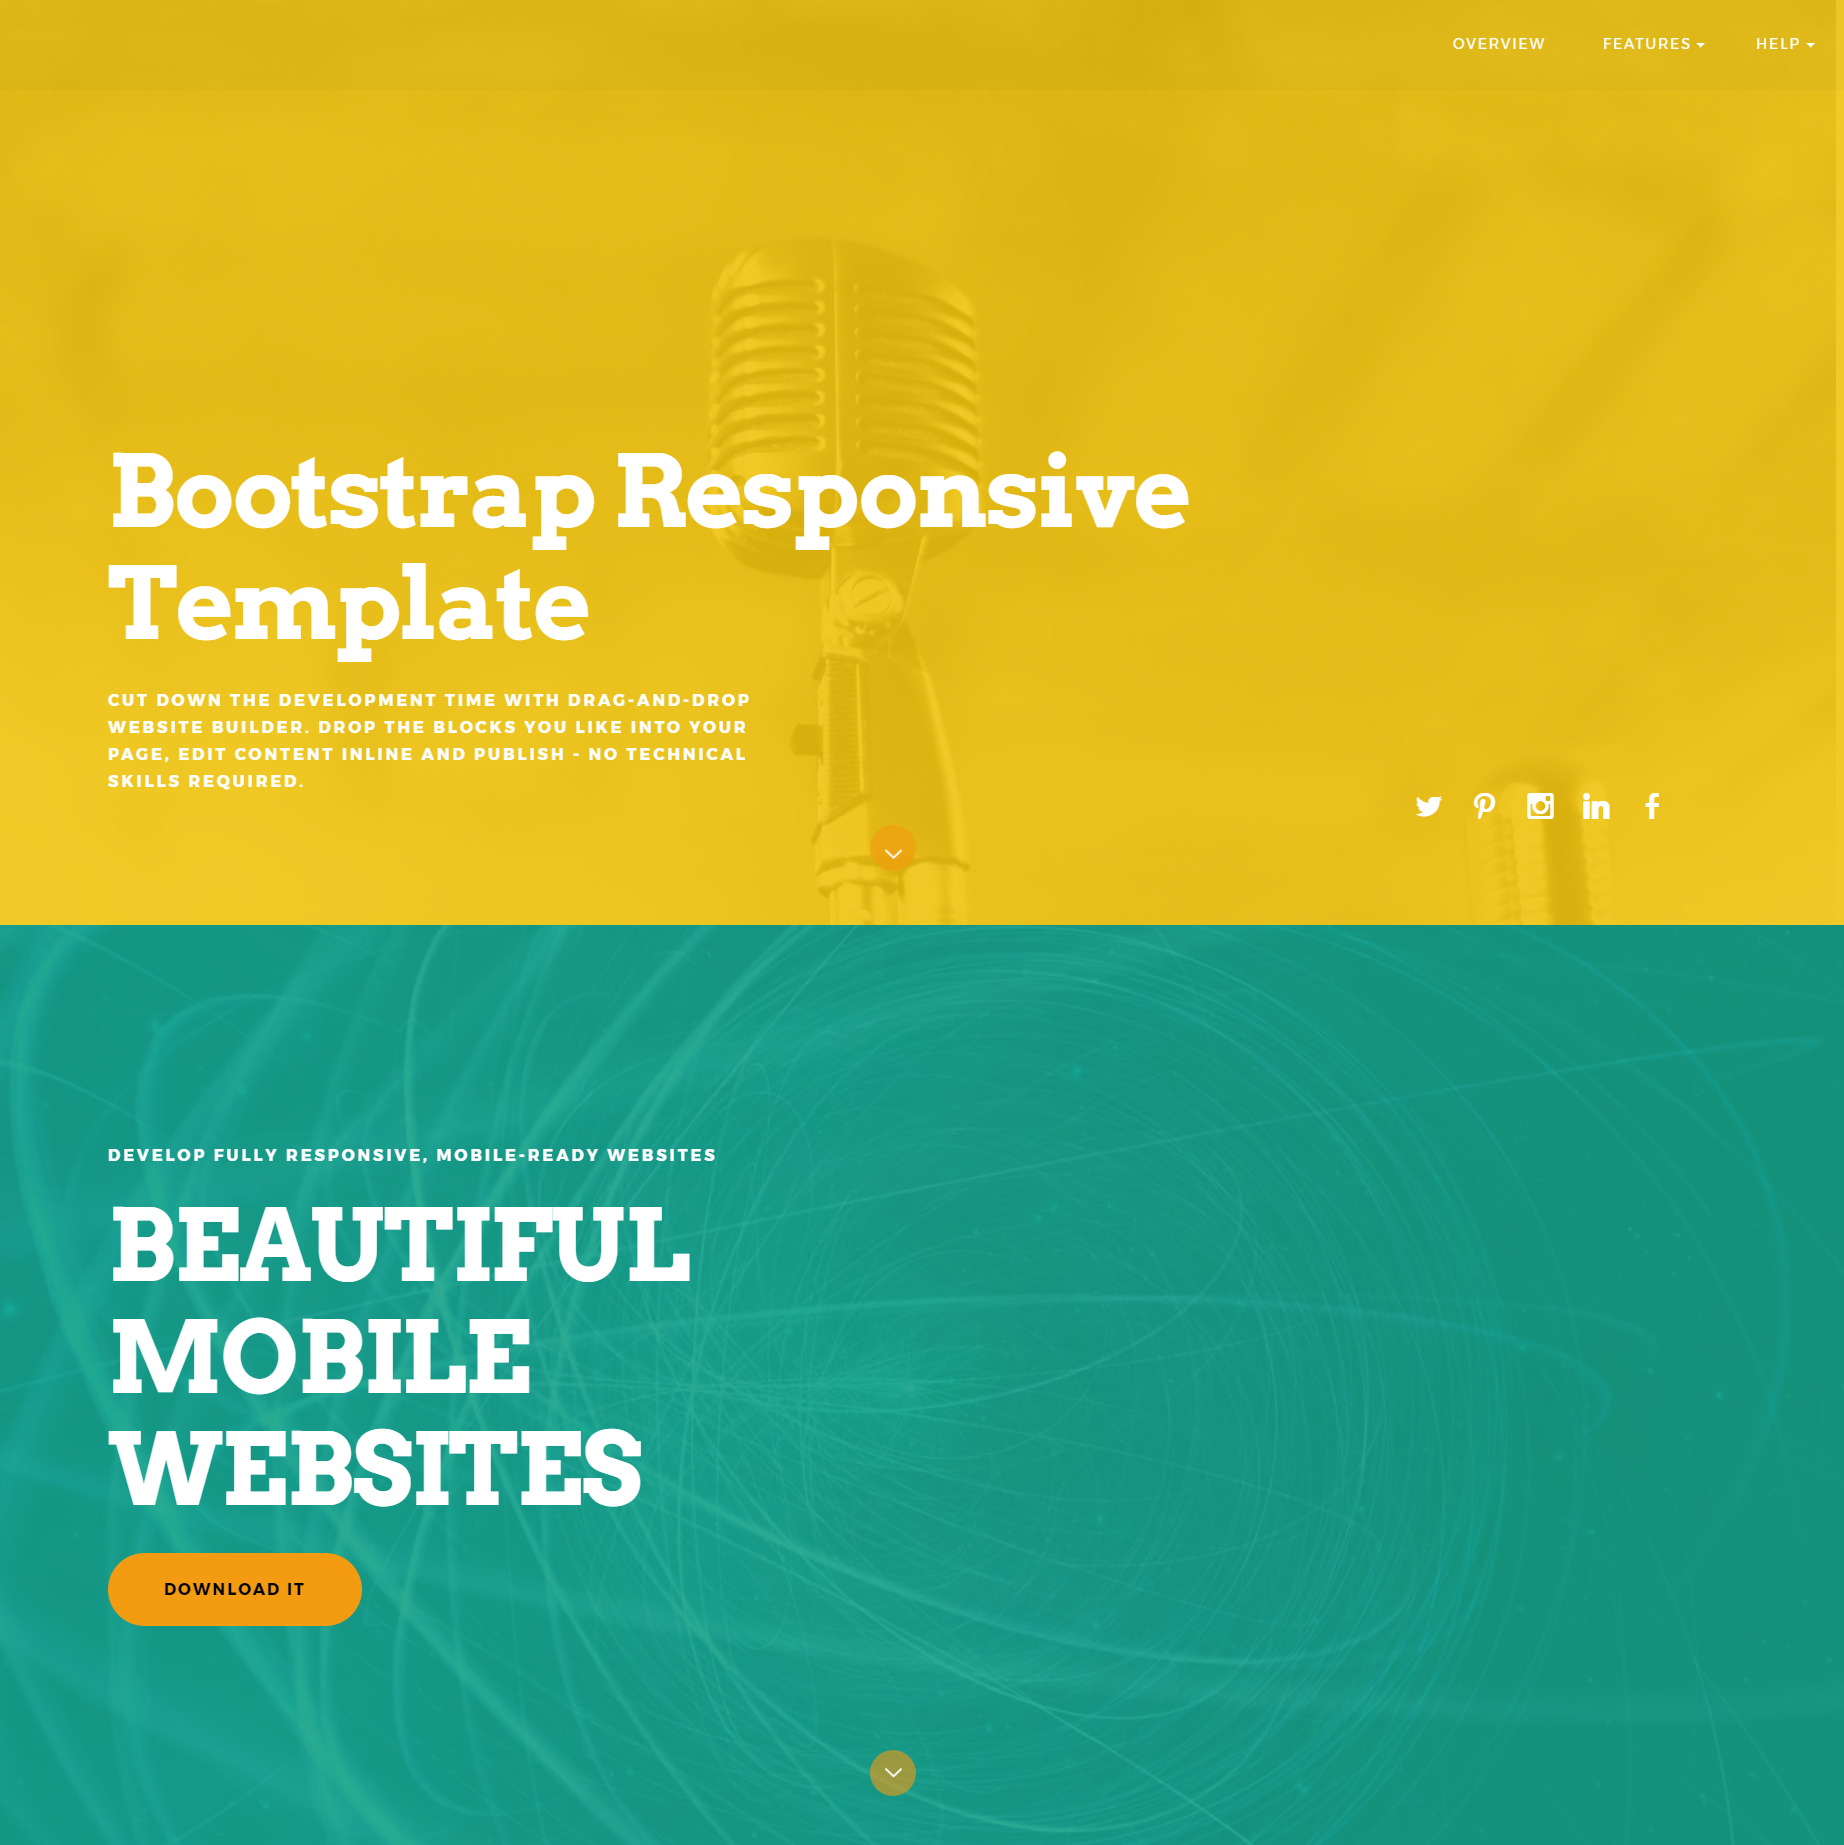 HTML5 Bootstrap Responsive Templates